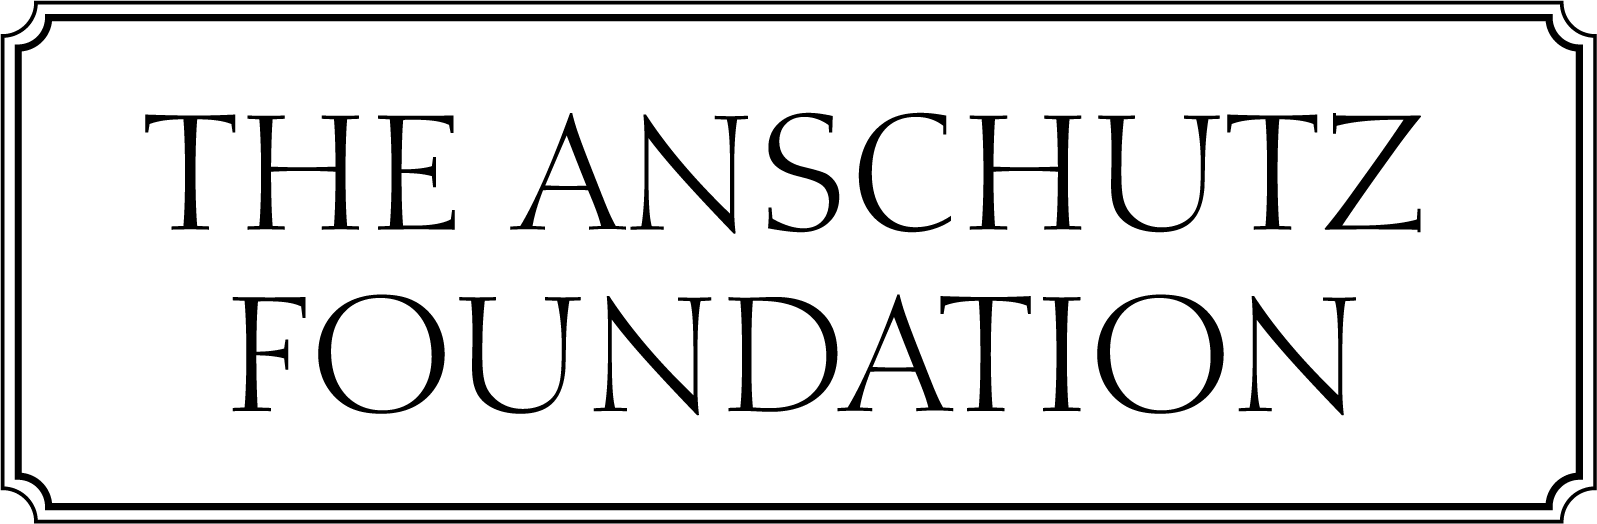 Anschutz-Foundation-logo-2015-stacked-ai.png